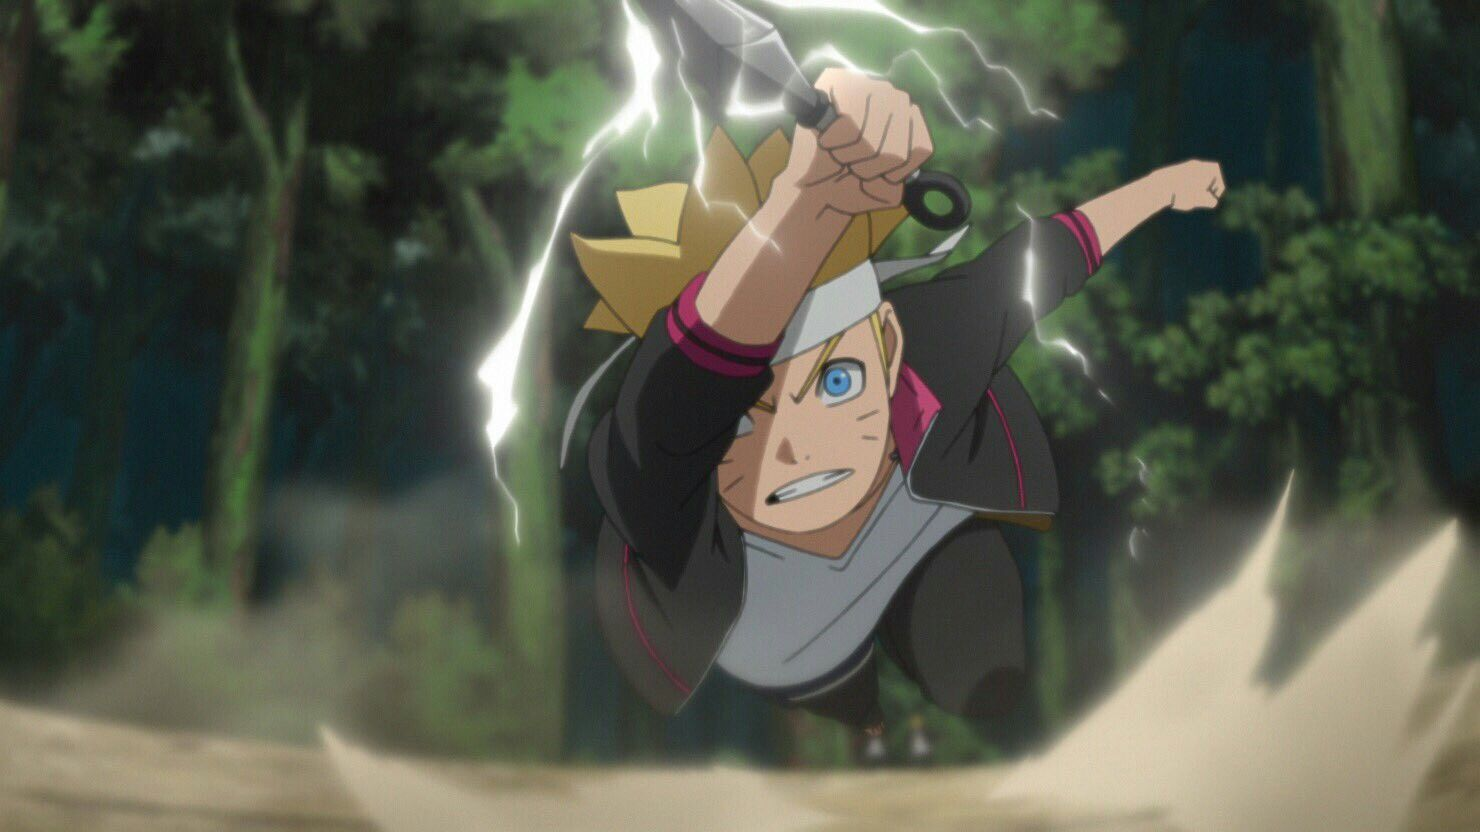 Boruto Stream Anime naruto, Boruto, Japanese animation